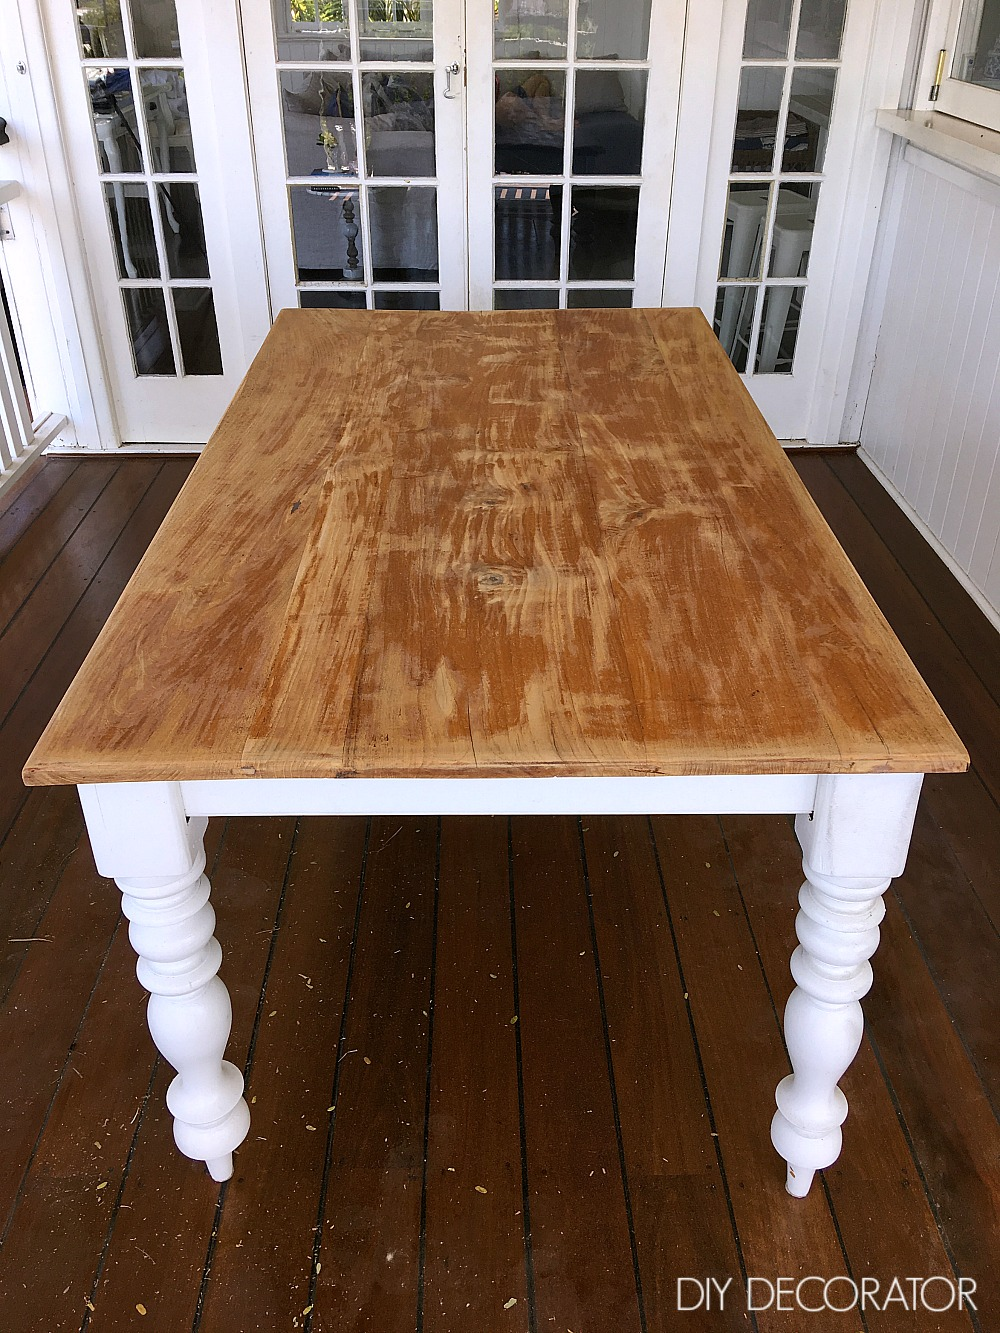 Refinishing outdoor table sanding